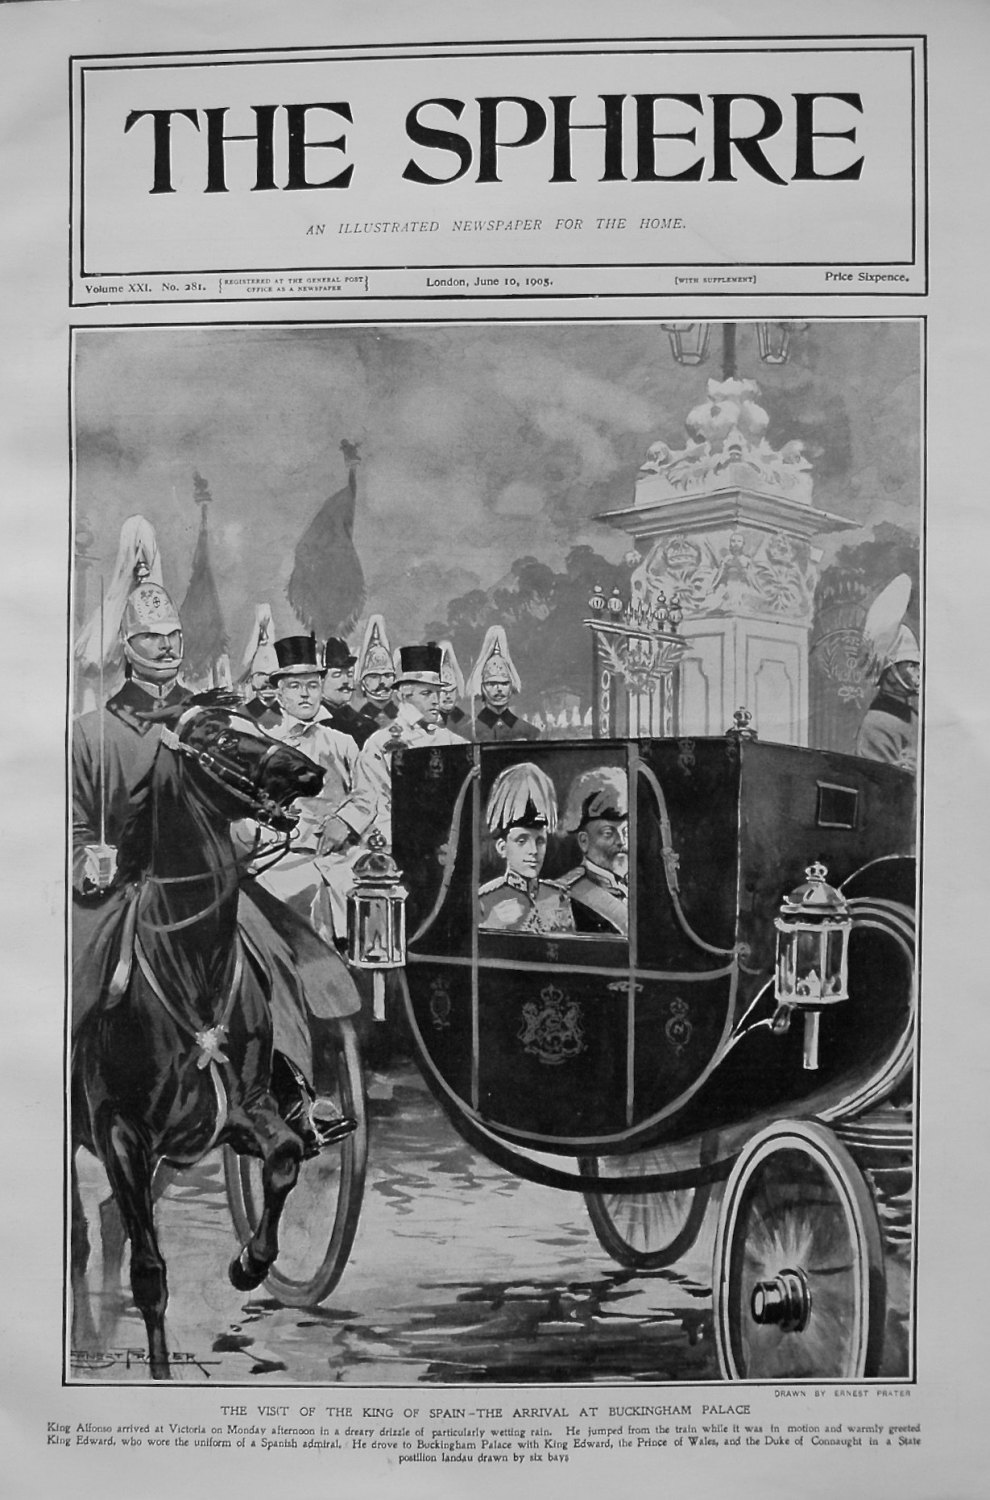 Visit of the King of Spain - Arrival at Buckingham Palace. 1905.